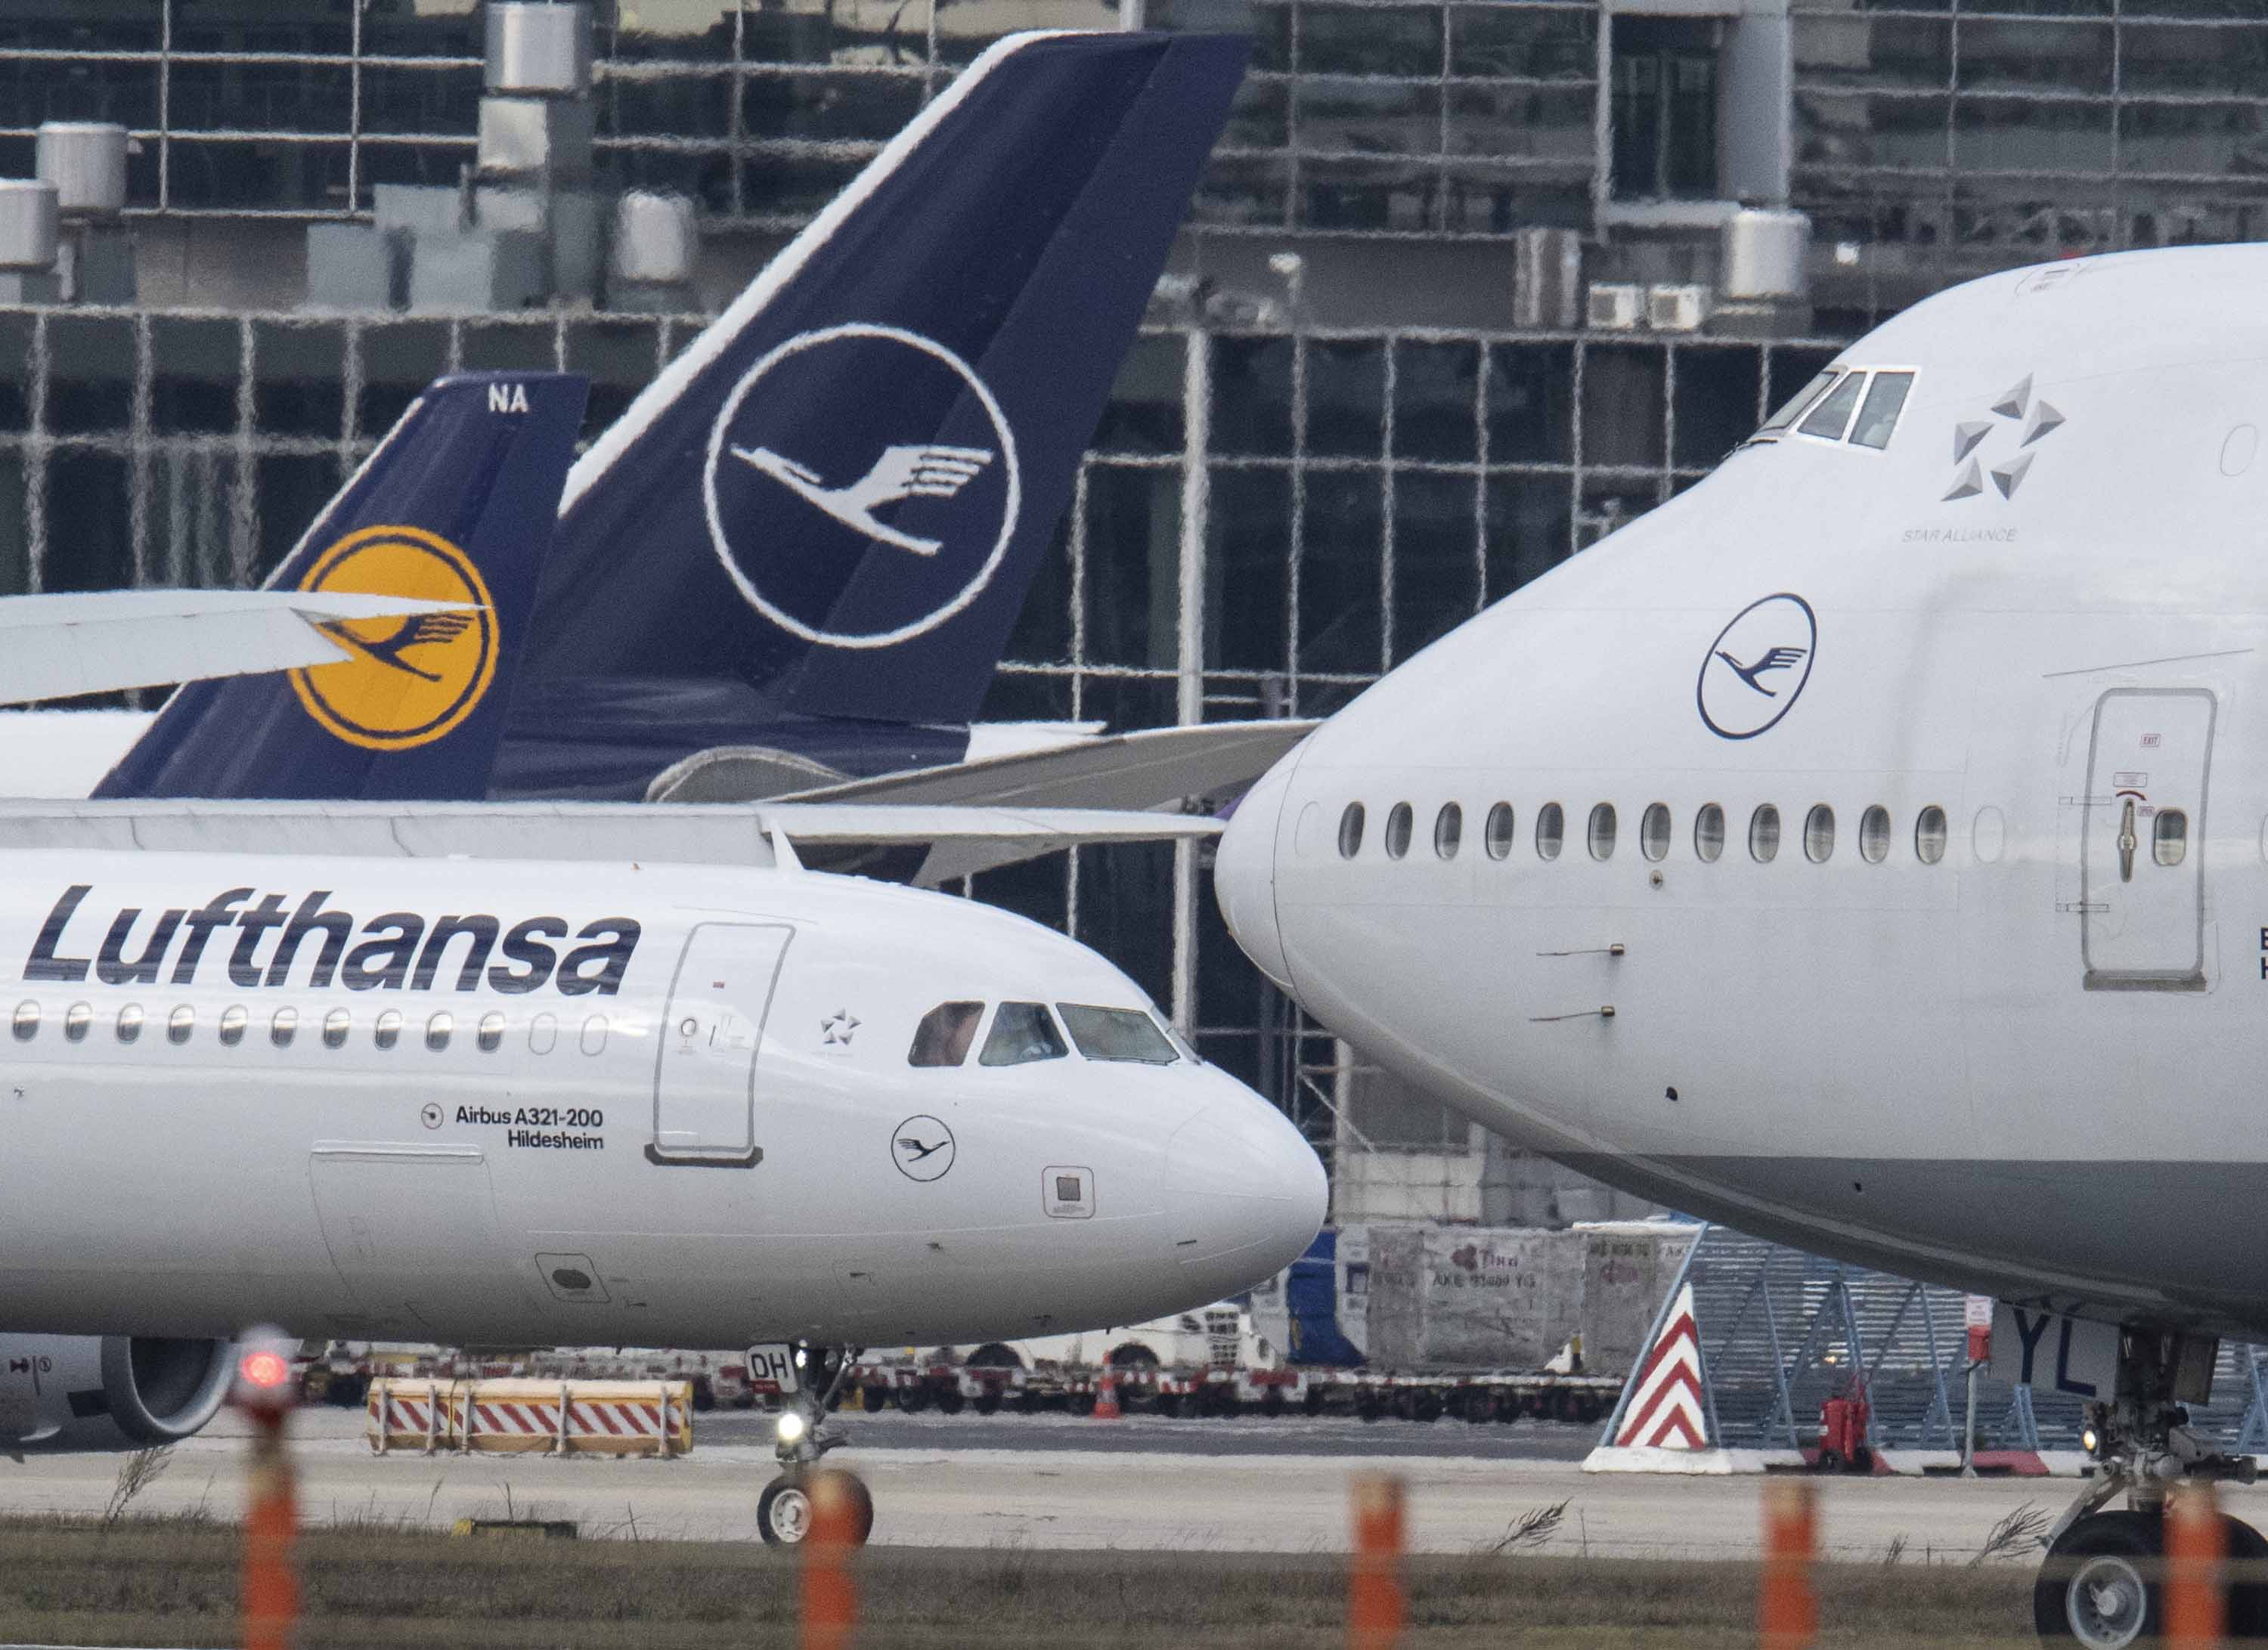 Lufthansa planes are seen in Frankfurt, Germany on February 18.